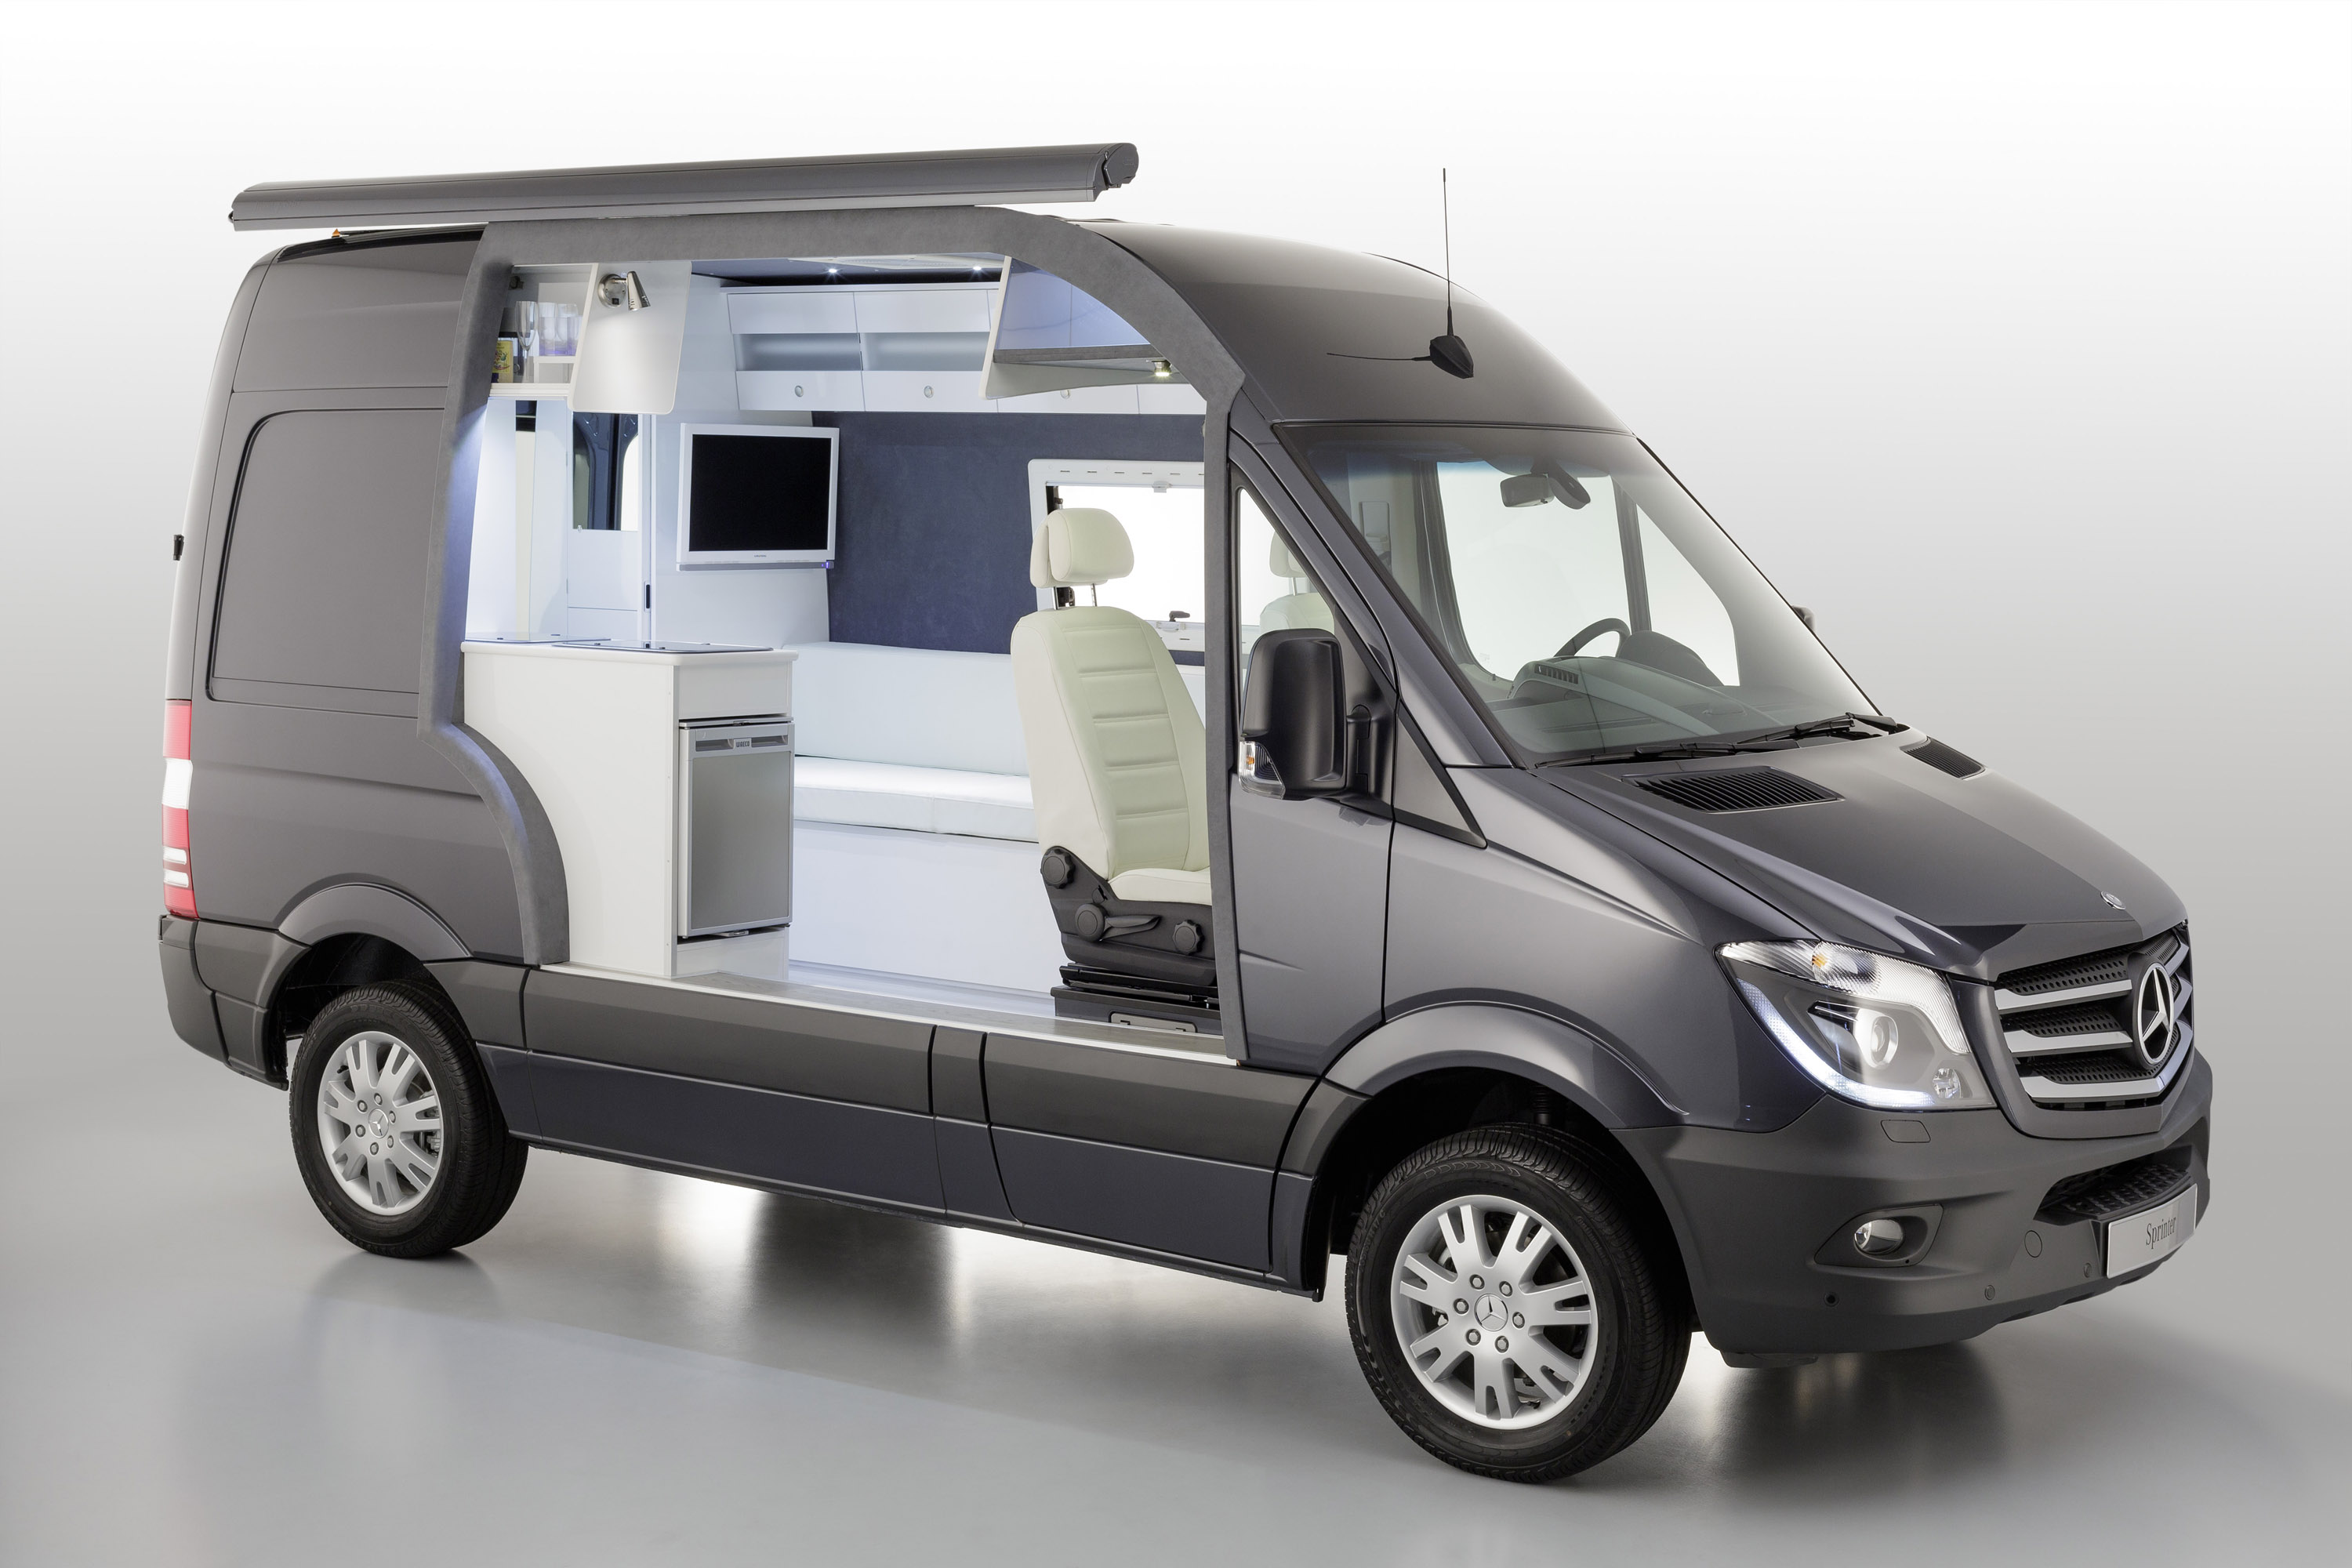 the when knew for reliable yet camper transformed fittings tynan motors was sale into mb so van benz come rv motorhome mercedes saw a their compact they of to best sprinter luxury